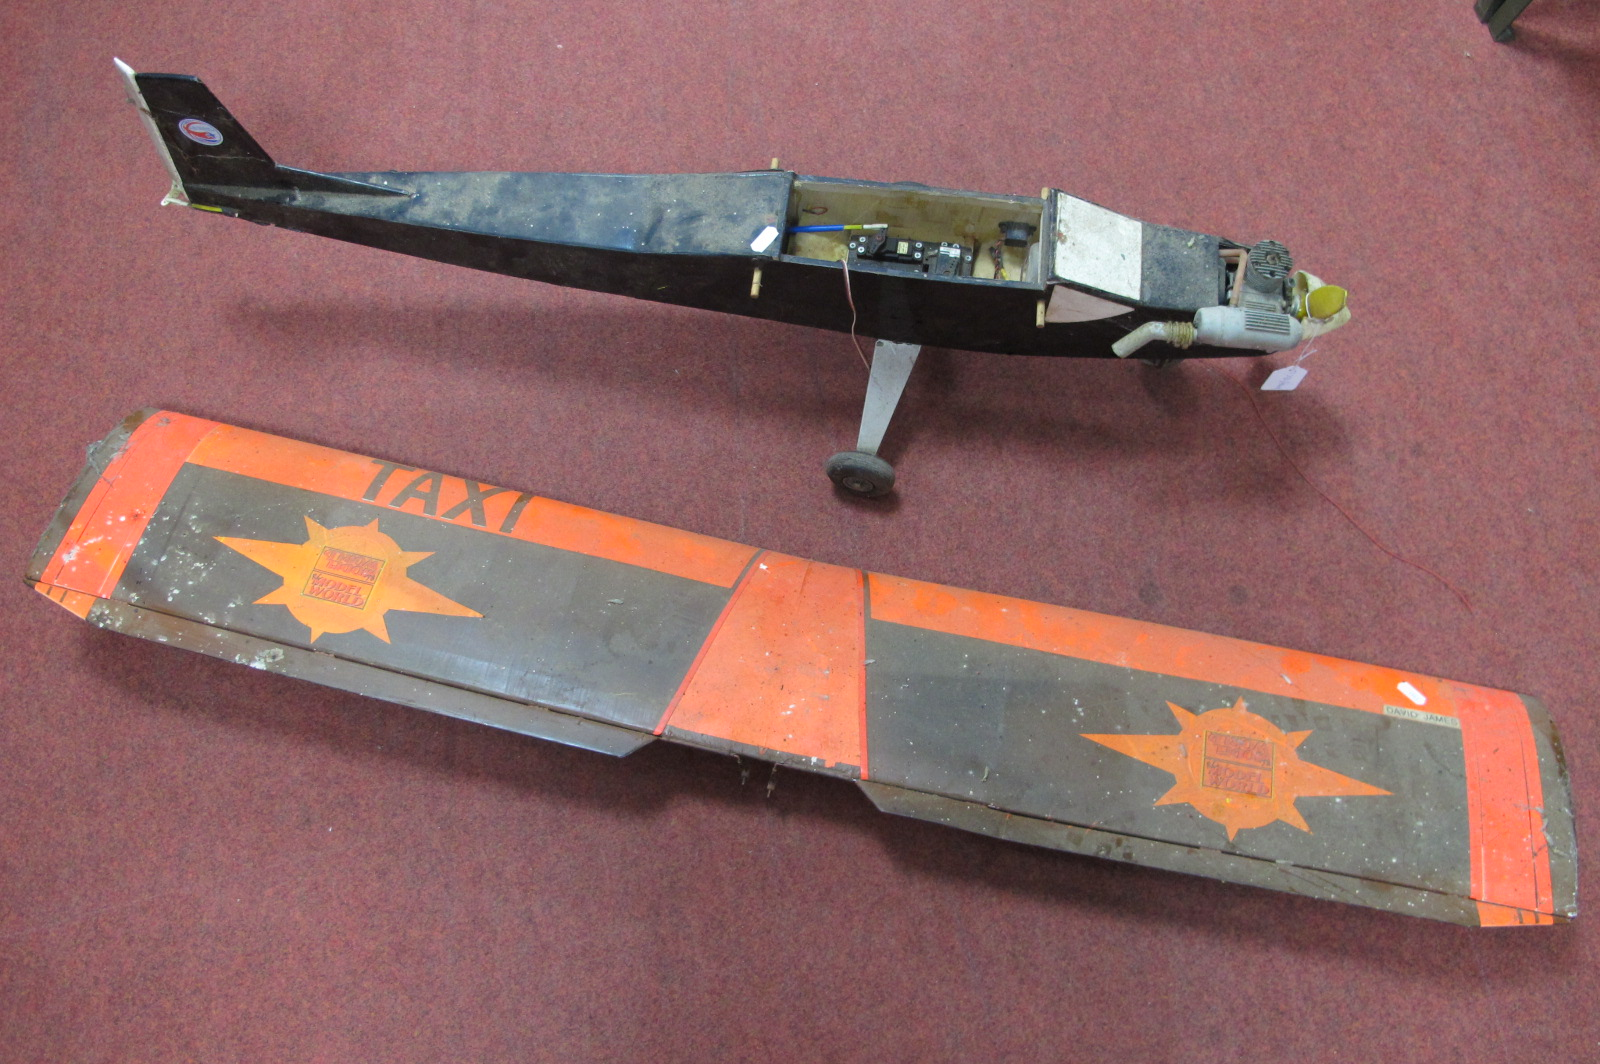 A Remote Control Aircraft, with Ripmax Servos Mounted 'Max-S SOS', petrol engine, a project piece in